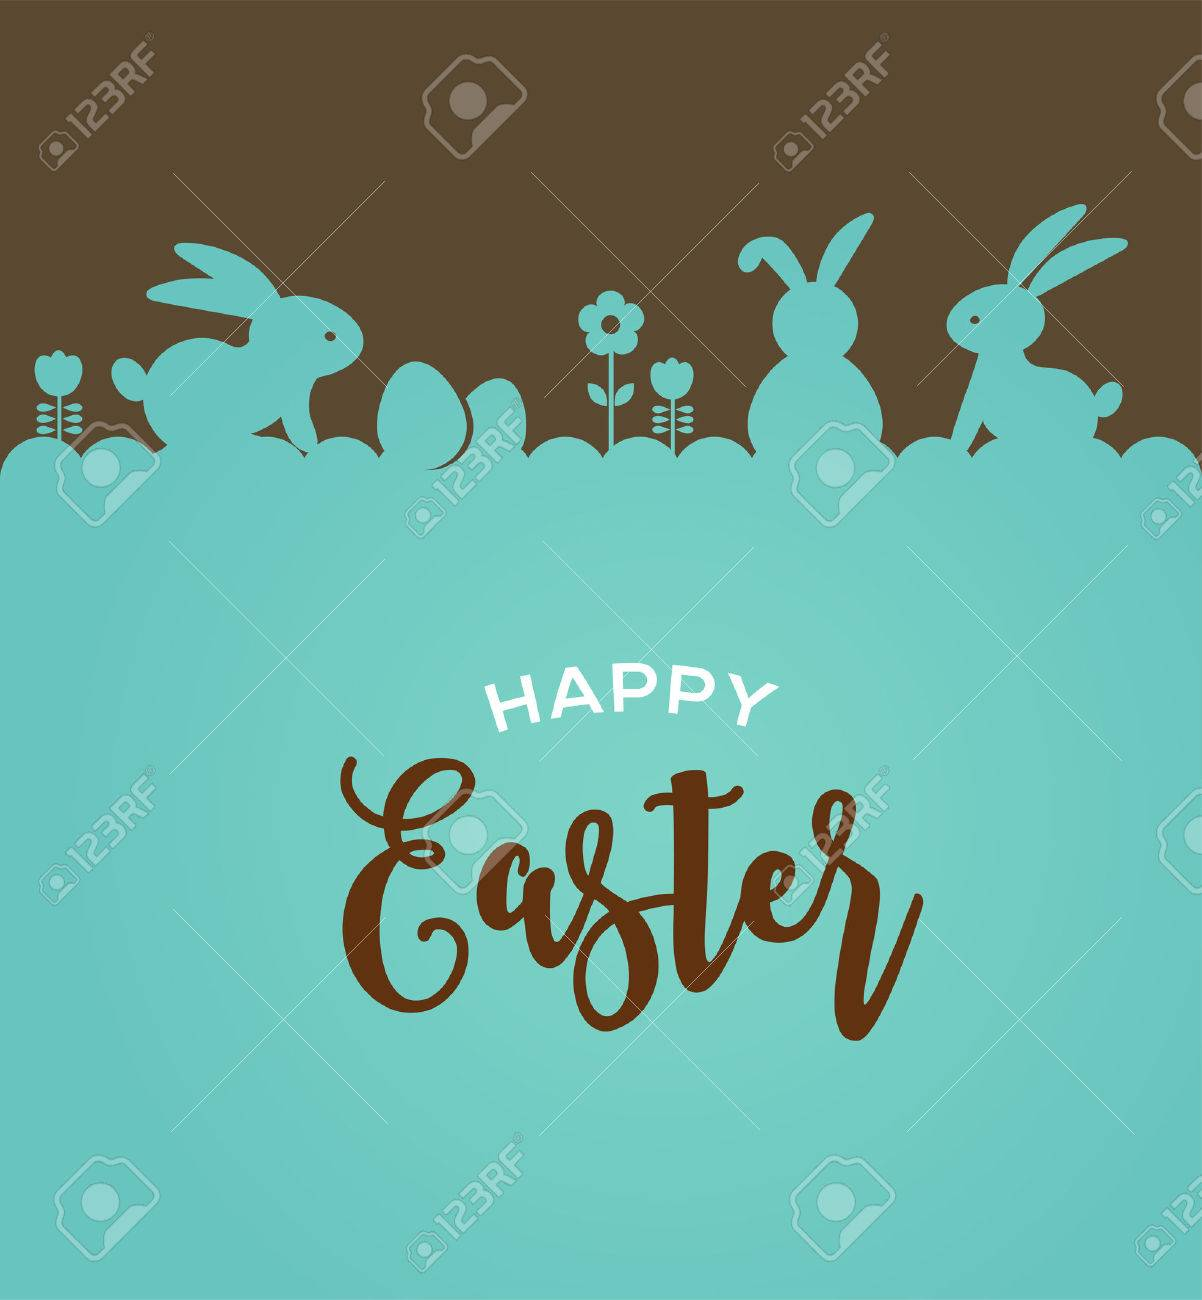 Easter design with cute banny and lettering, hand drawn vector illustration - 52823918